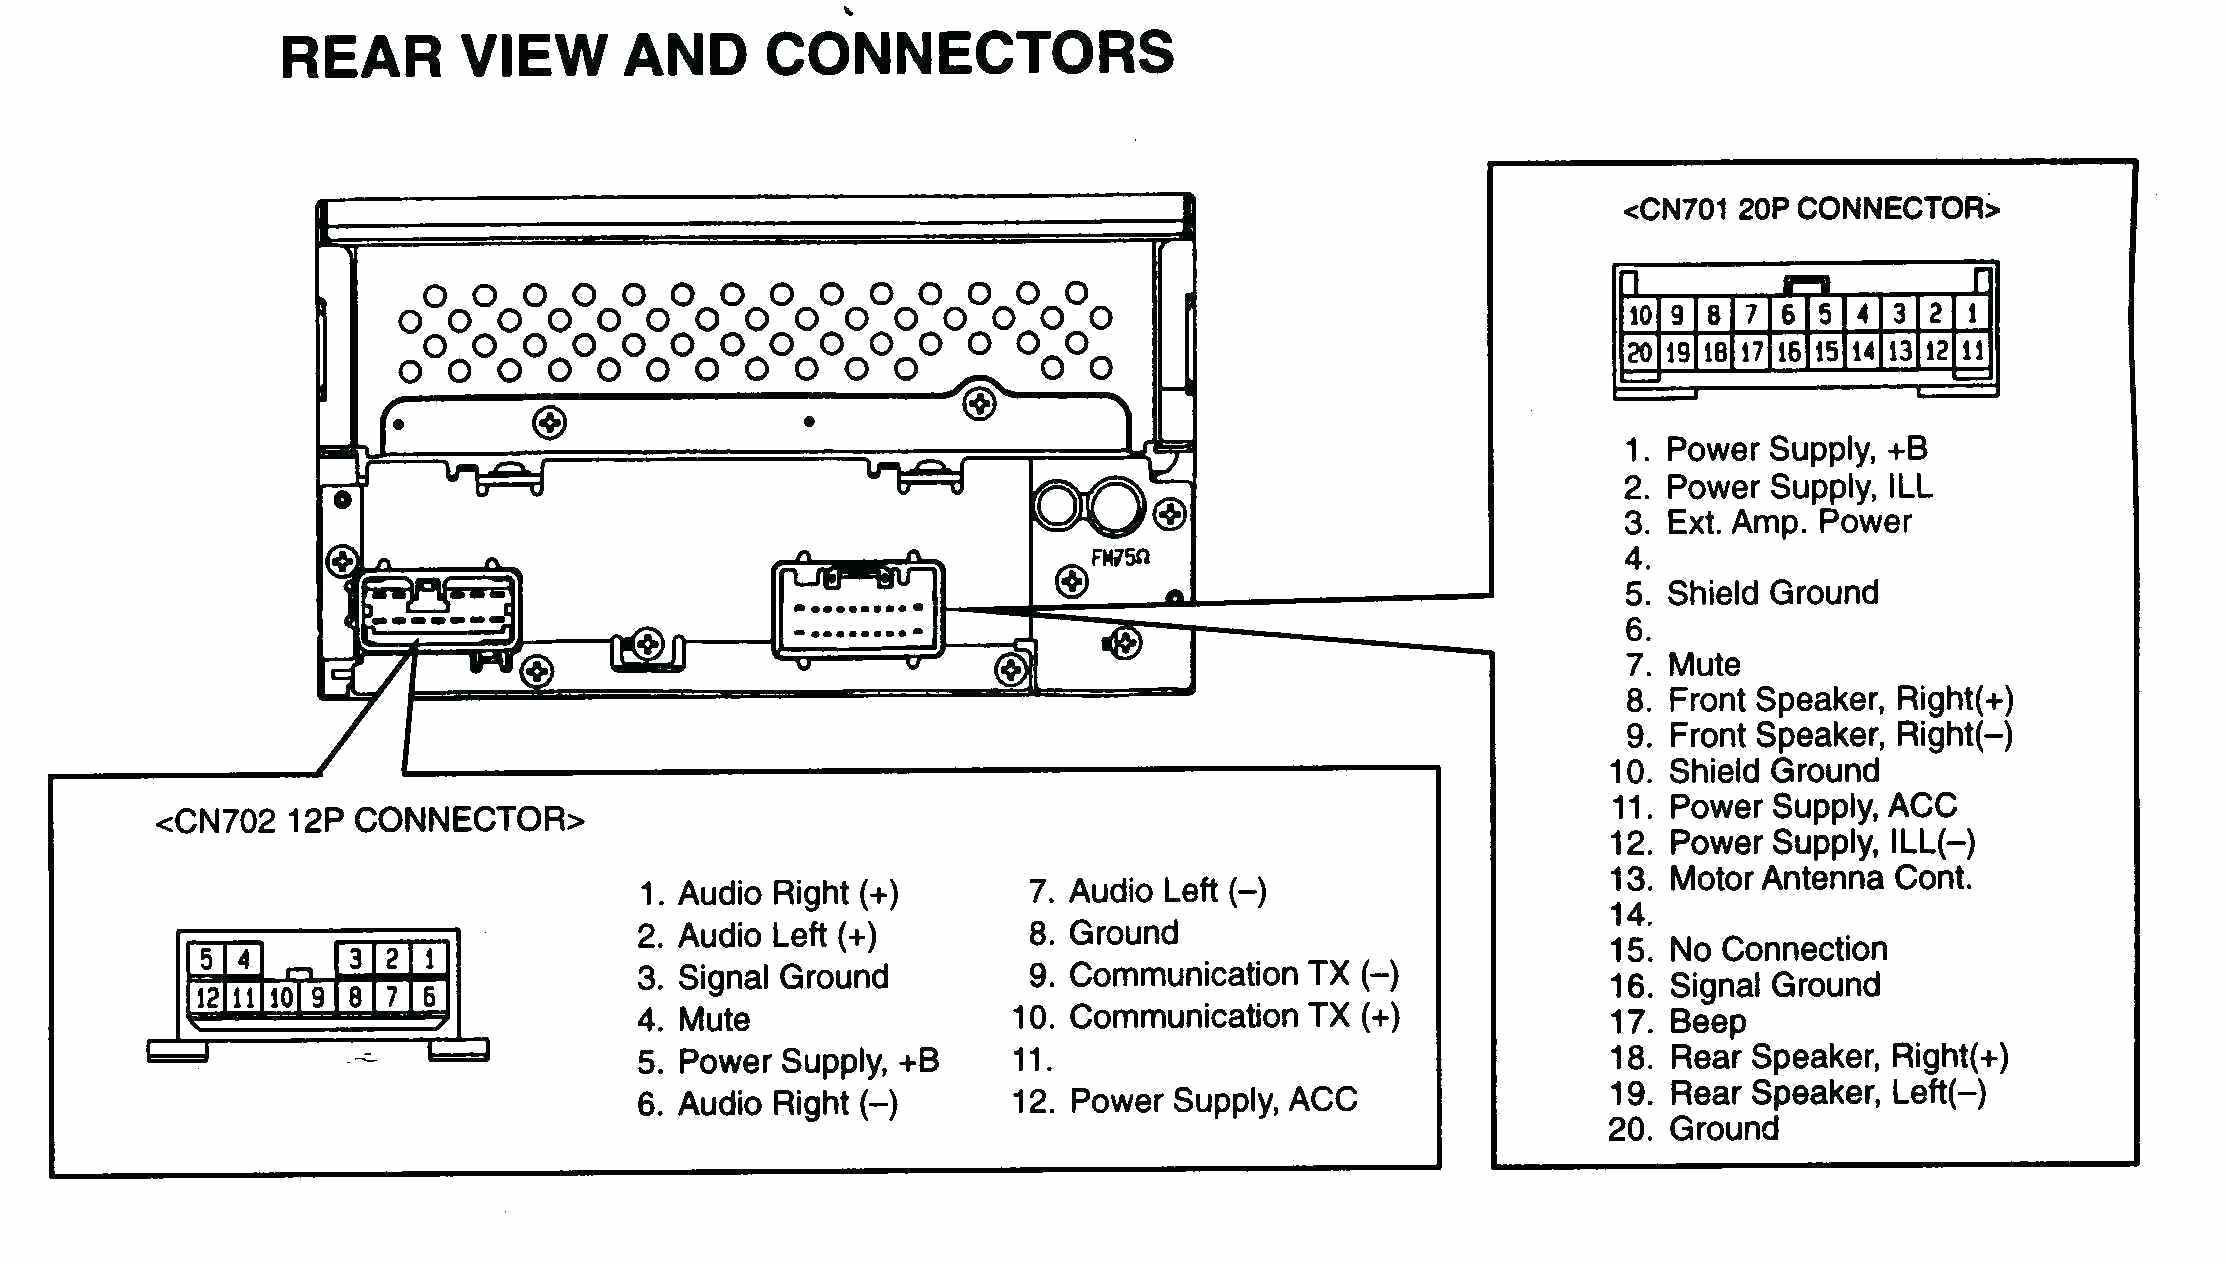 2001 Nissan Frontier Radio Wiring Diagram With Schematic Audio 2001 Nissan Frontier Radio Wiring Diagram With